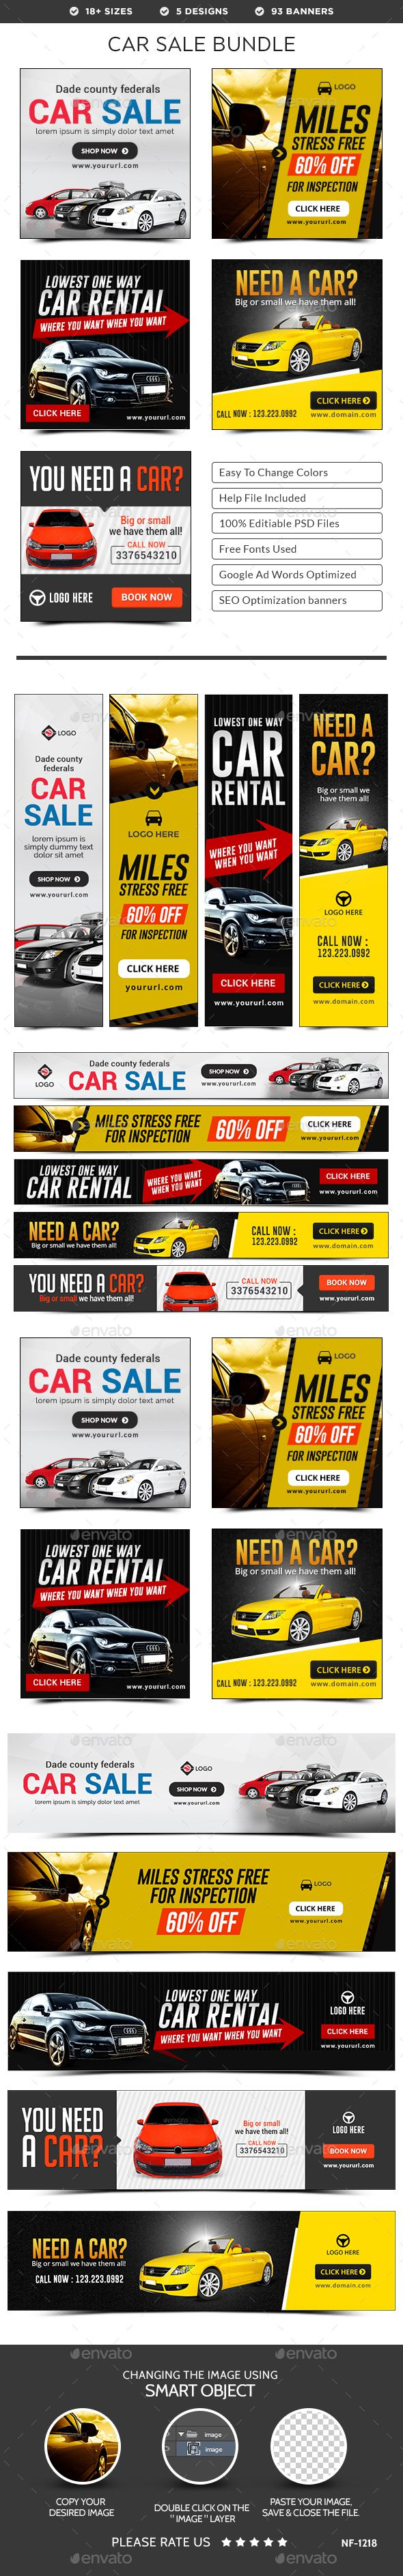 best 25 car sales ideas on pinterest